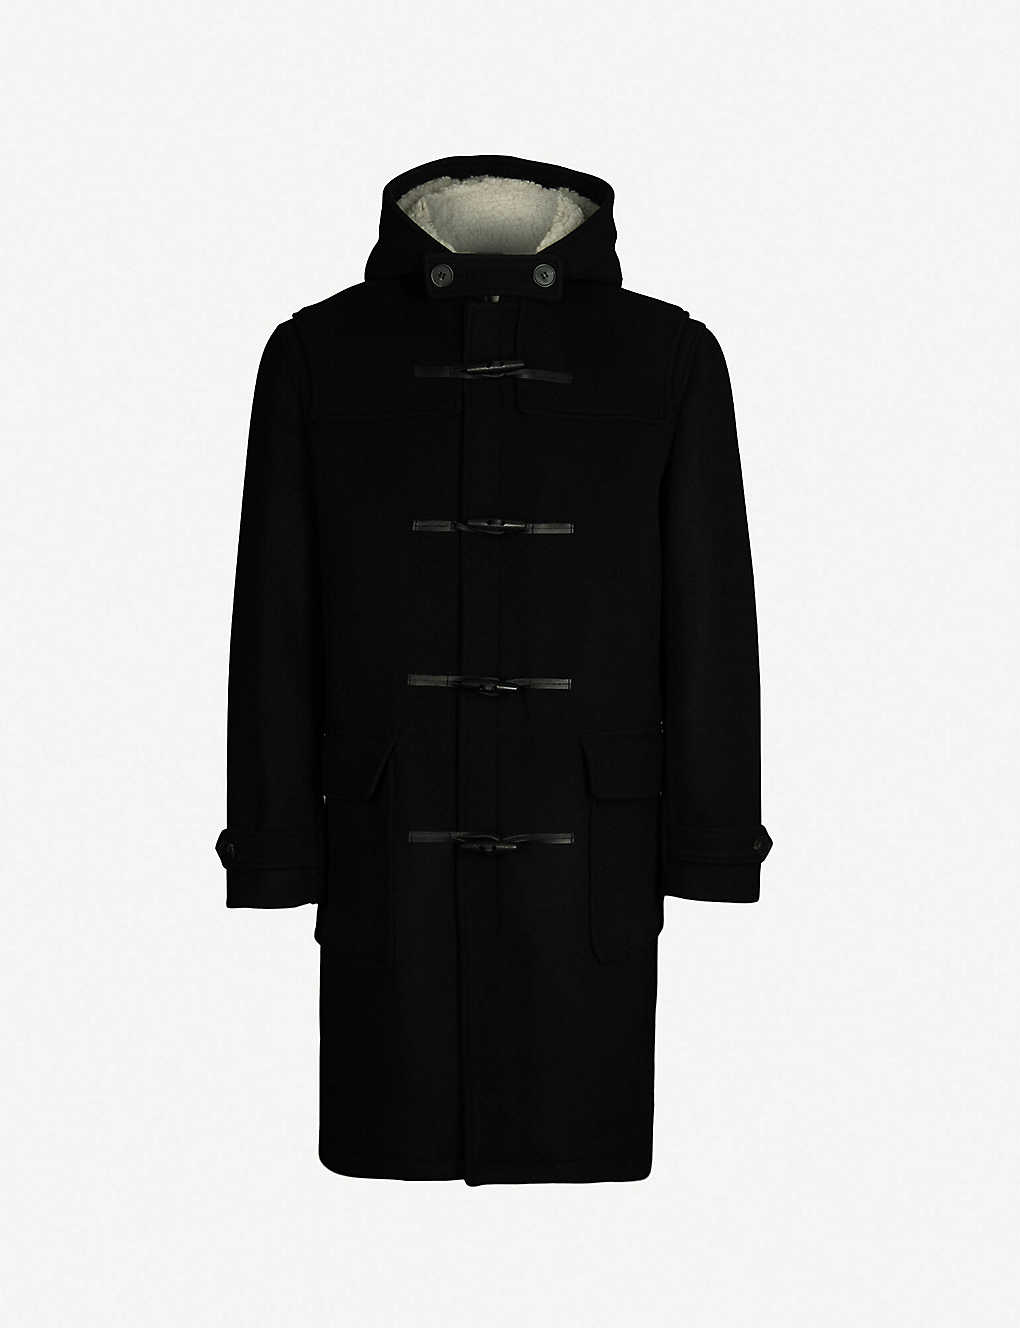 66d10d45a9a THE KOOPLES - Hooded wool-blend duffle coat | Selfridges.com